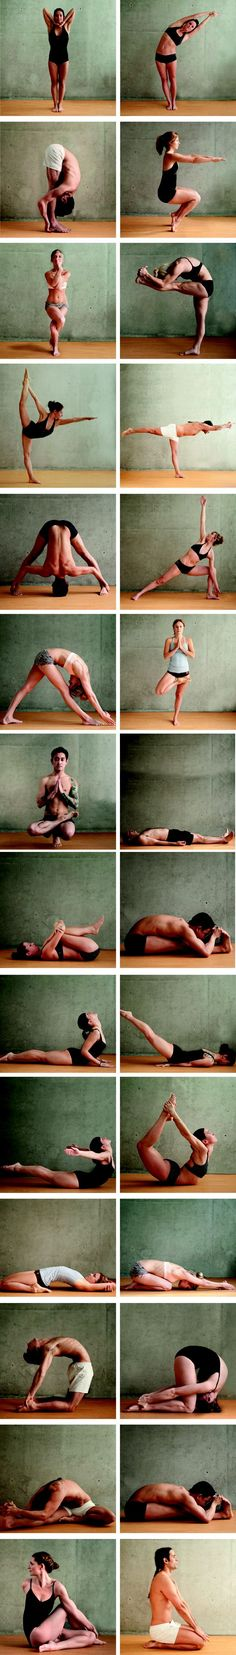 26 Bikram Yoga Poses  #yoga  #fitness  |  http://bikramyogavancouver.com/new-to-bikram-yoga-vancouver/26-bikram-yoga-poses/